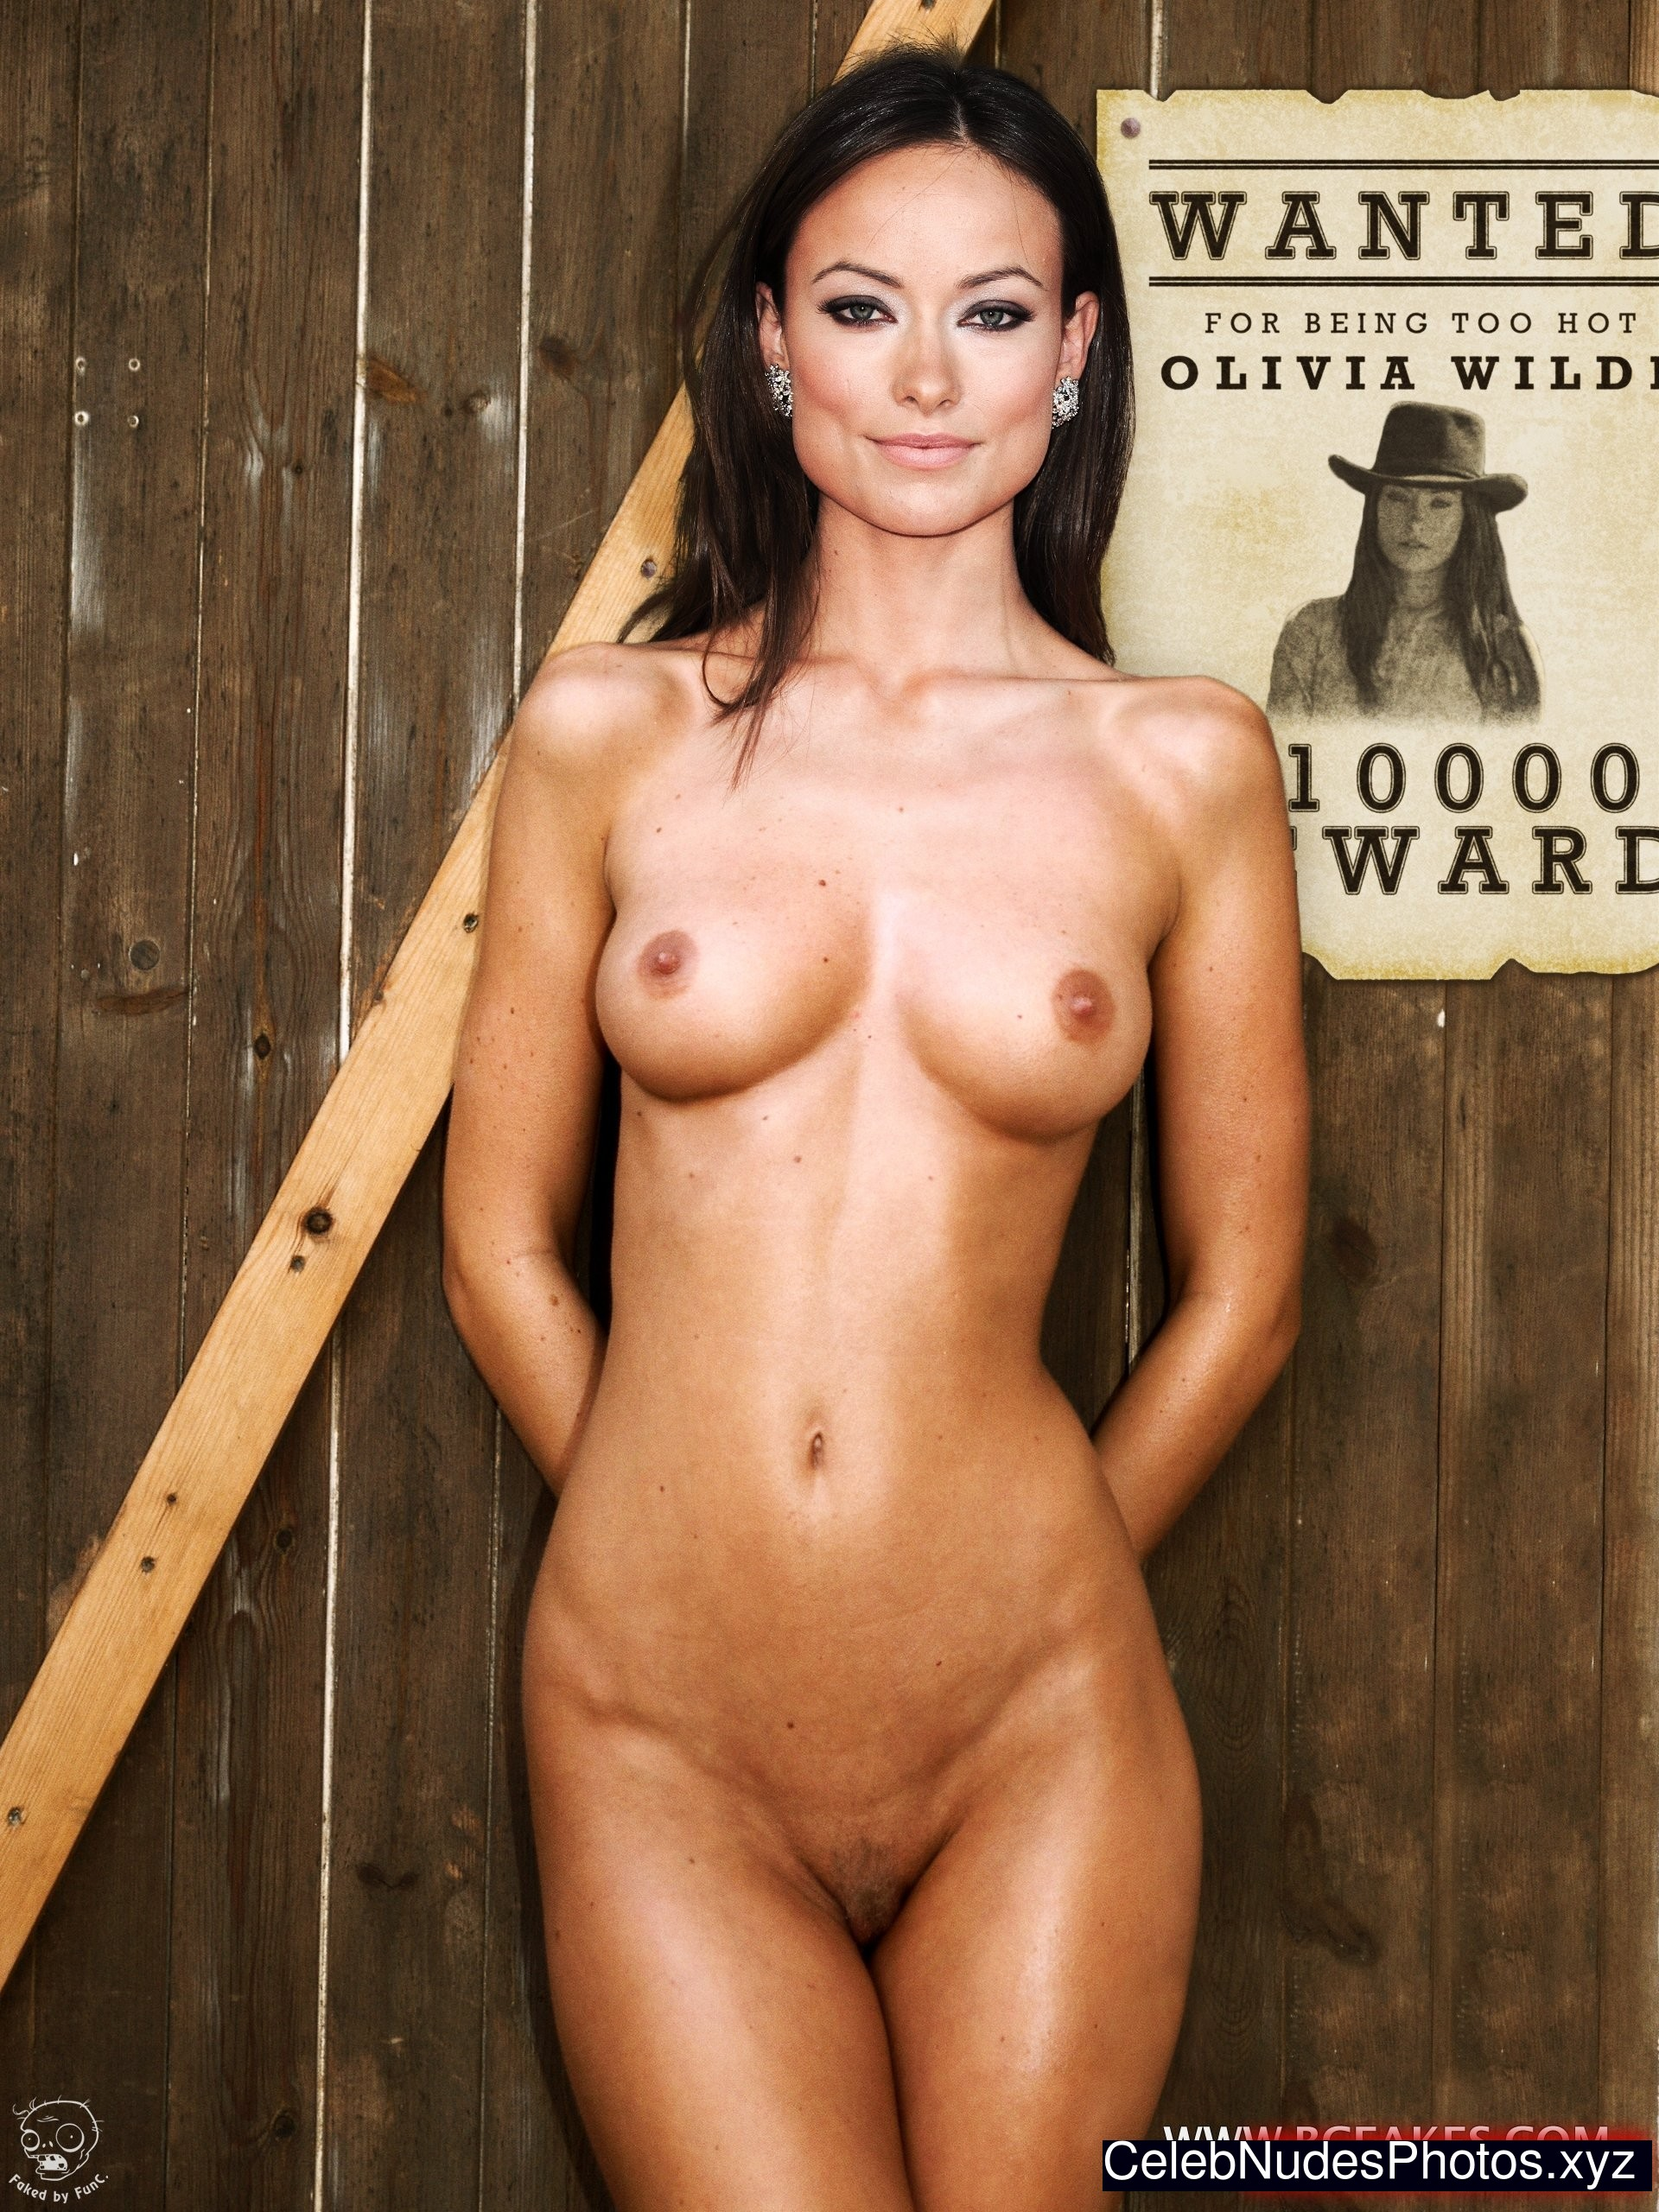 Naked pictures of olivia wilde